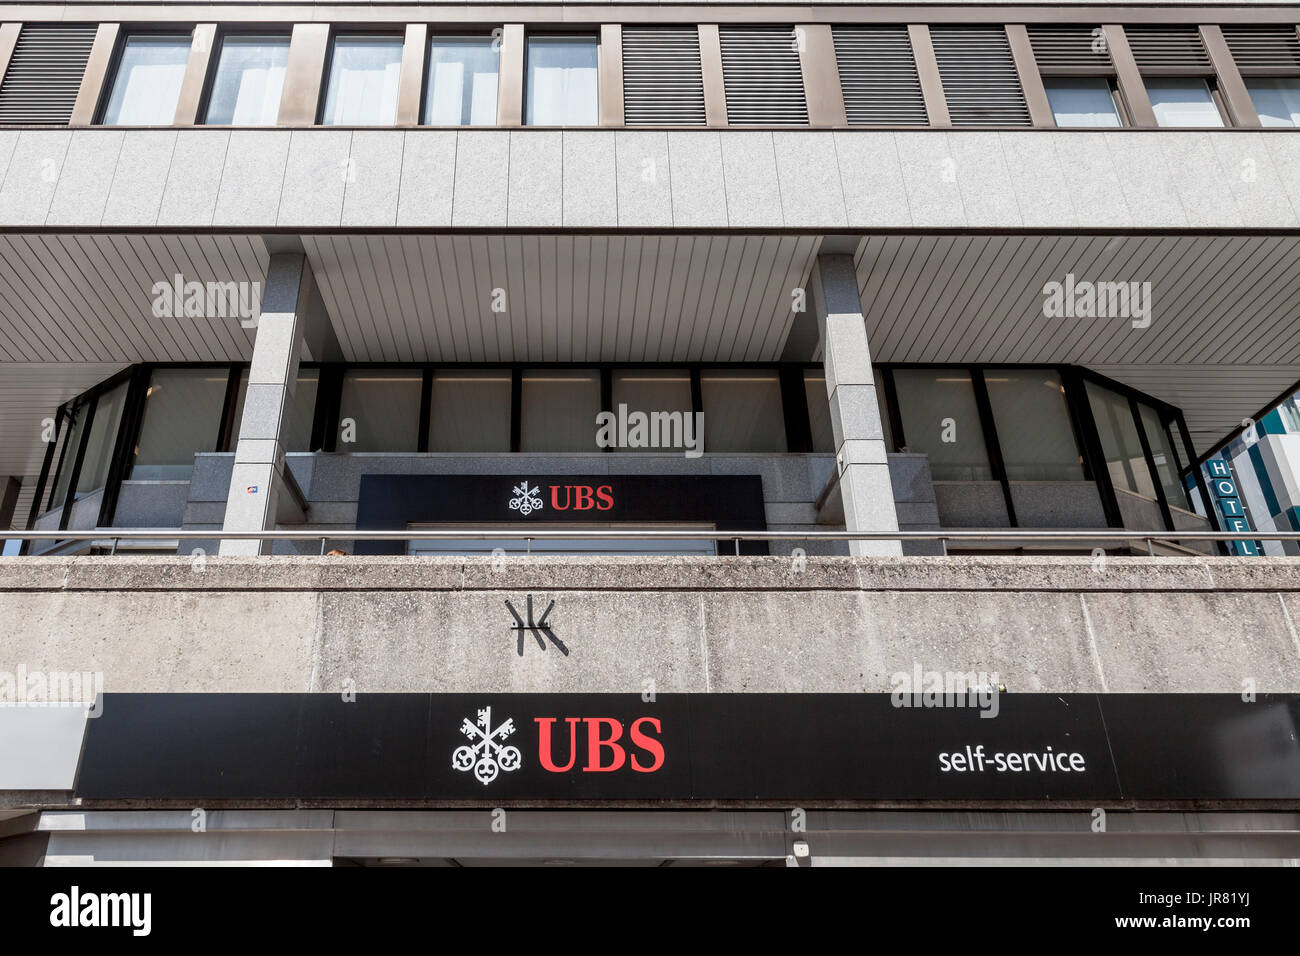 GENEVA, SWITZERLAND - JUNE 19, 2017: Local branch of UBS (Union Bank Switerland) in Geneva. UBS is one of the main banks of the country, famous for it - Stock Image